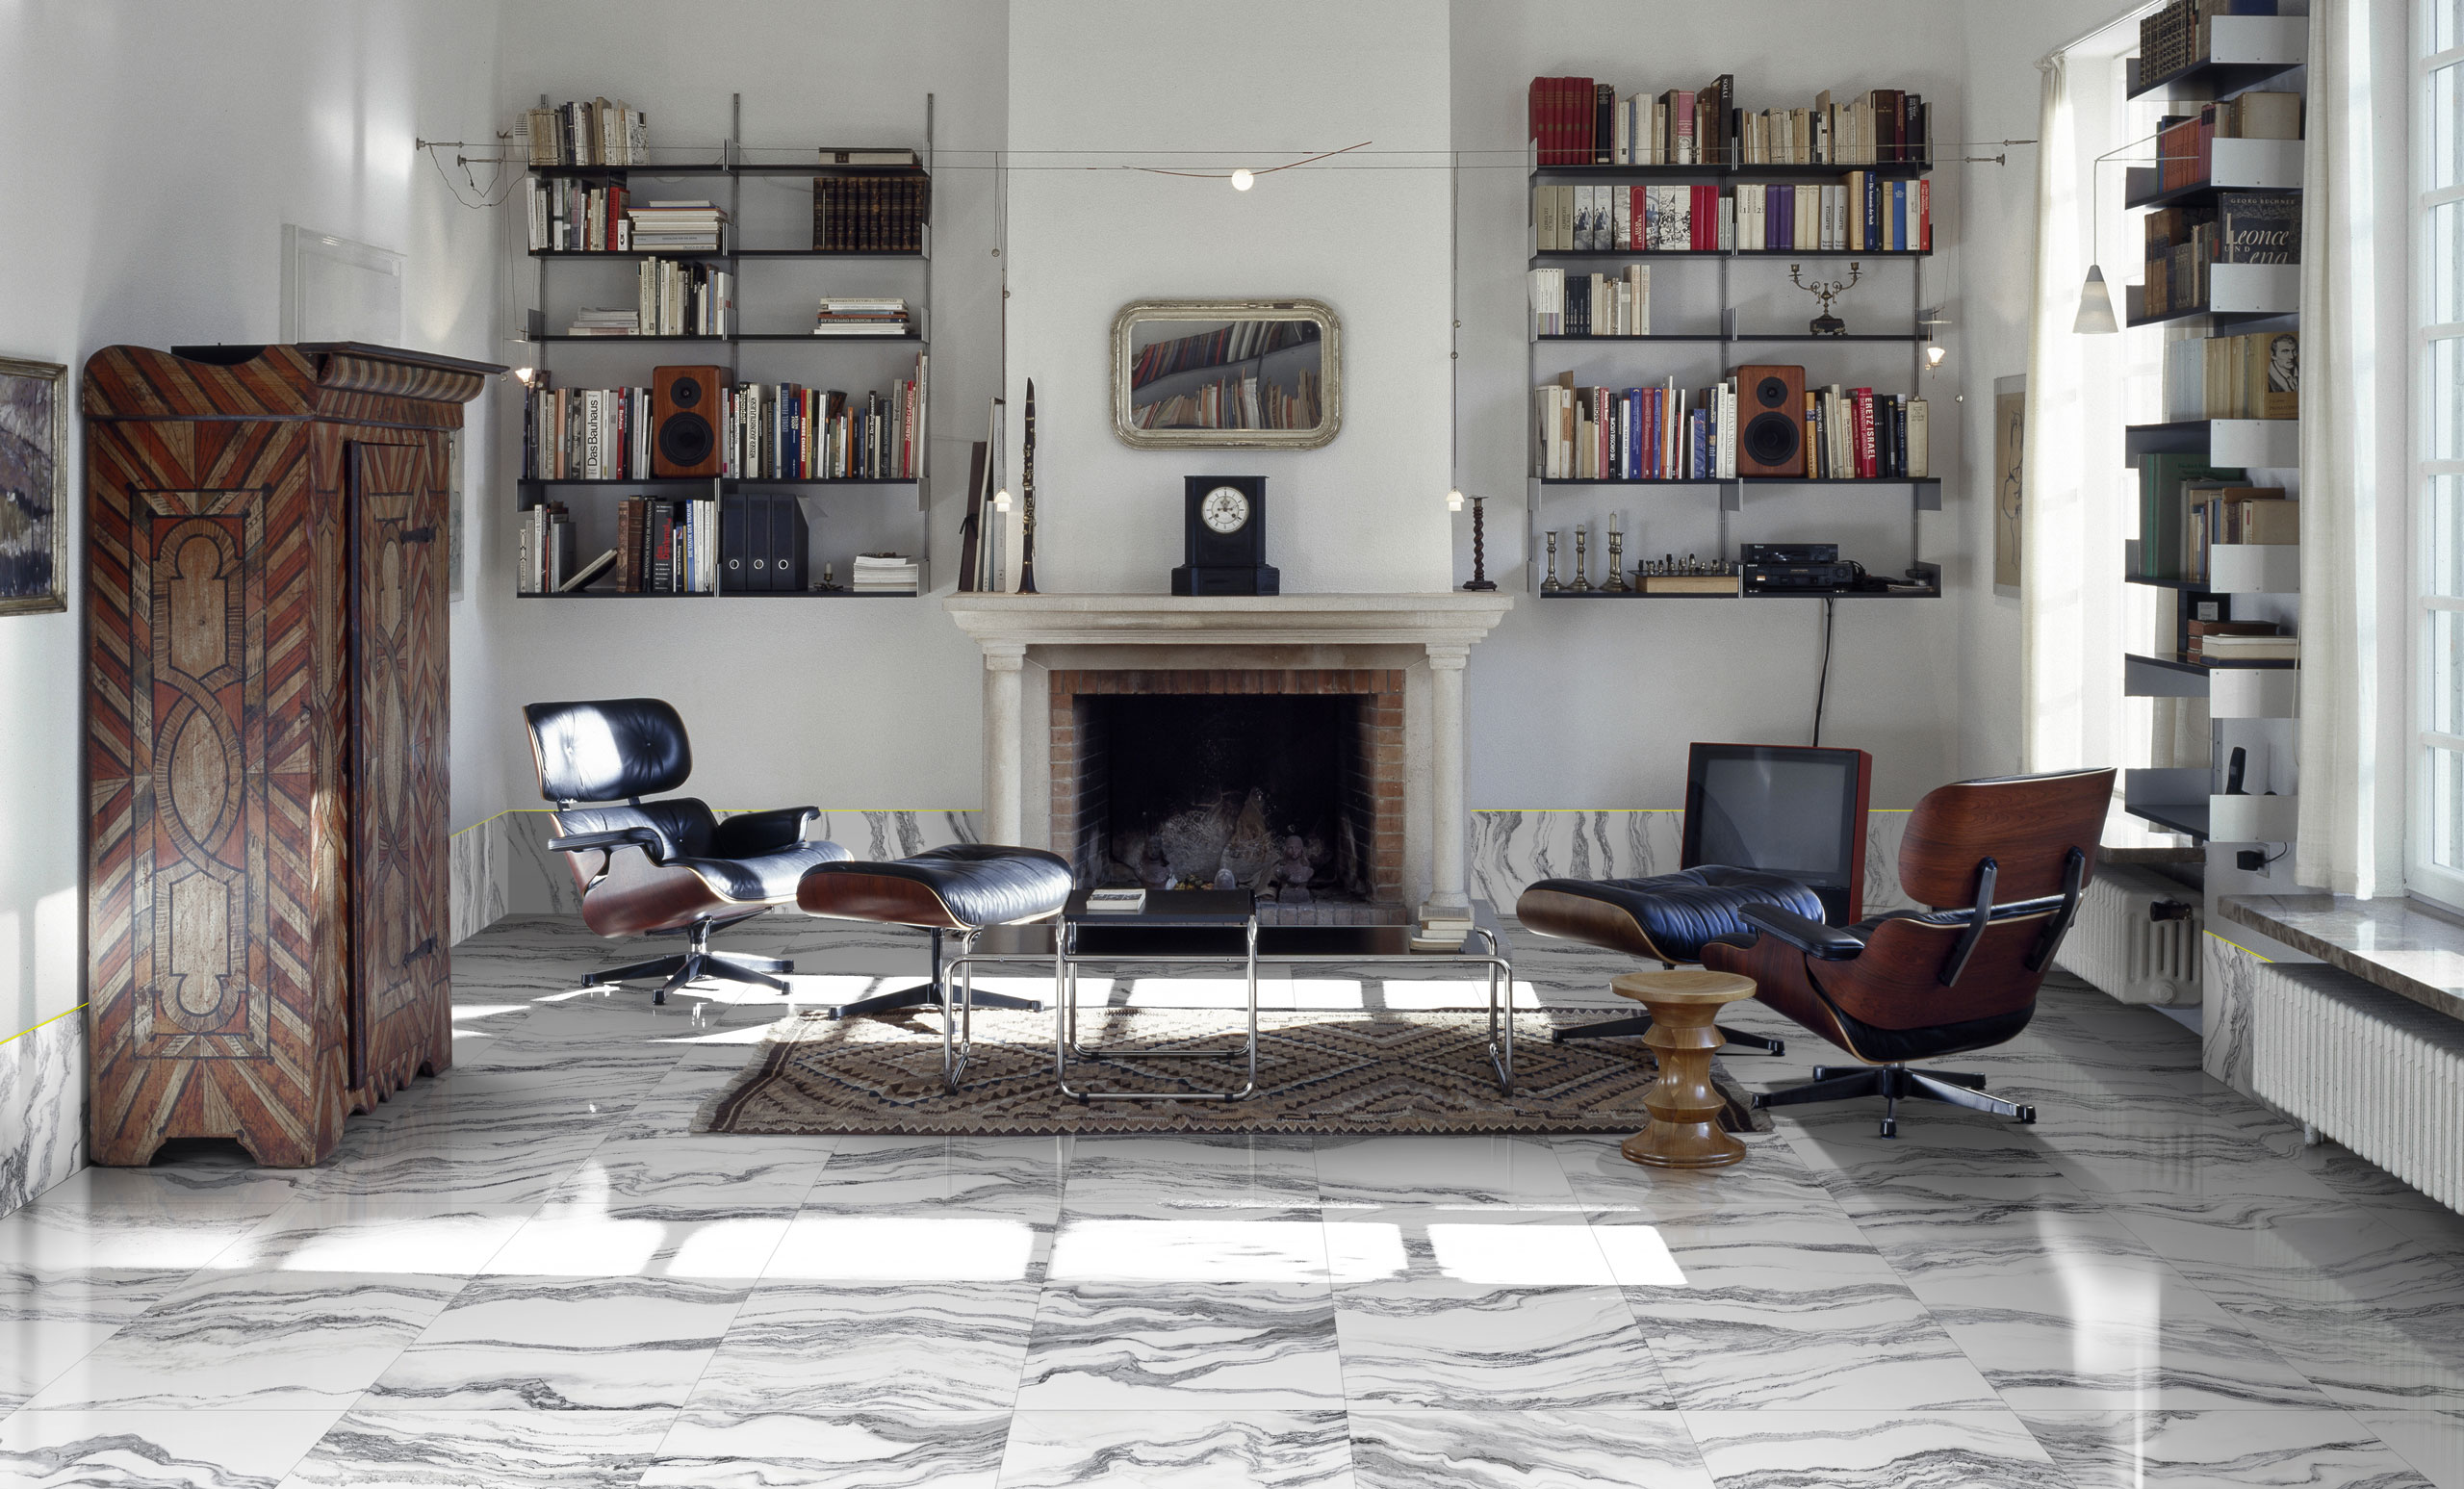 Why Porcelain Tiles Make Such a Good Flooring Choice